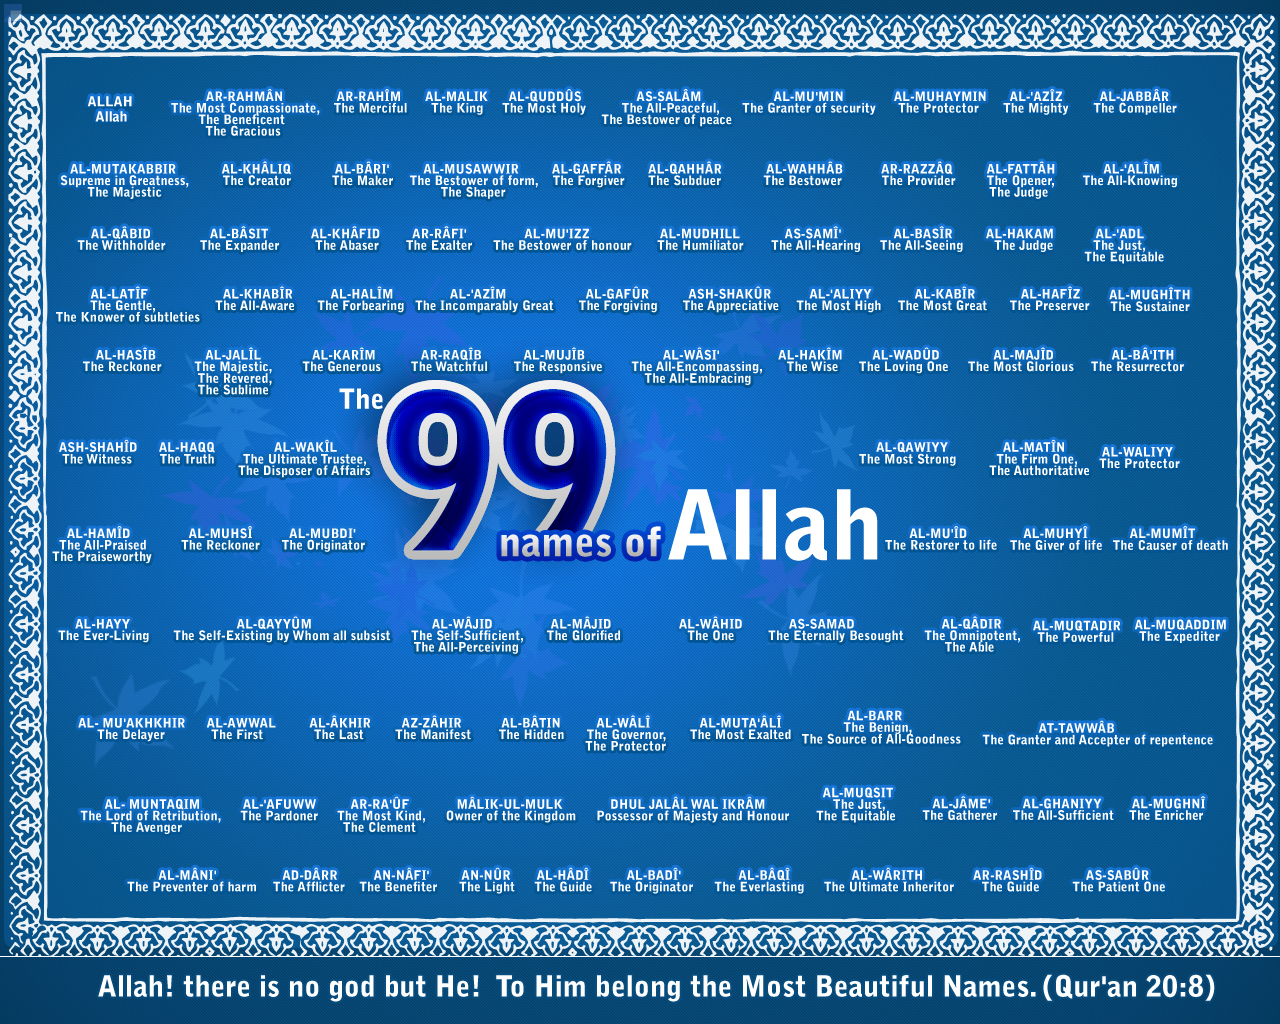 cool wallpapers: 99 names of allah wallpapers